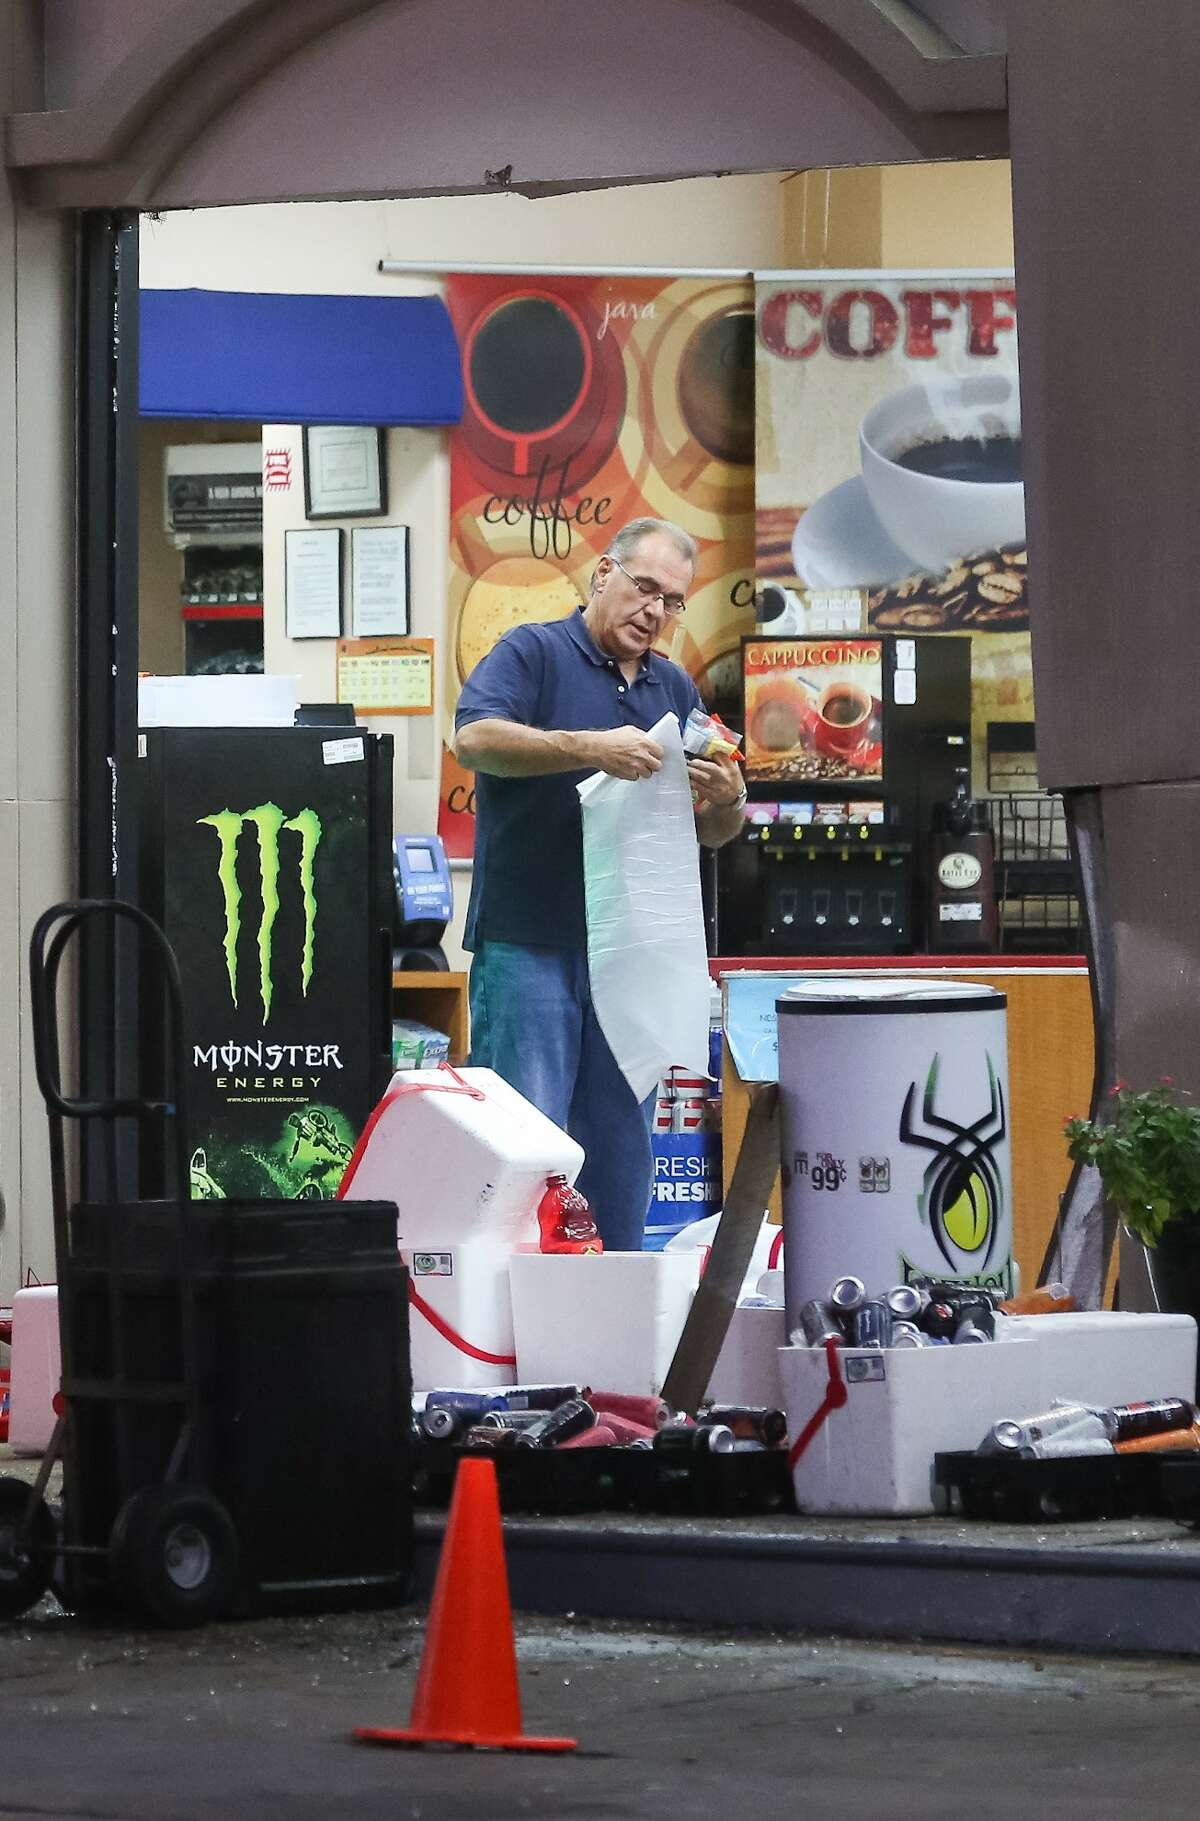 A man cleans up debris from an overnight smash-and-grab burglary at a Shell station, at the intersection of the Katy Freeway and Cortandt Street, Thursday, Nov. 17, 2016, in Houston, Texas.